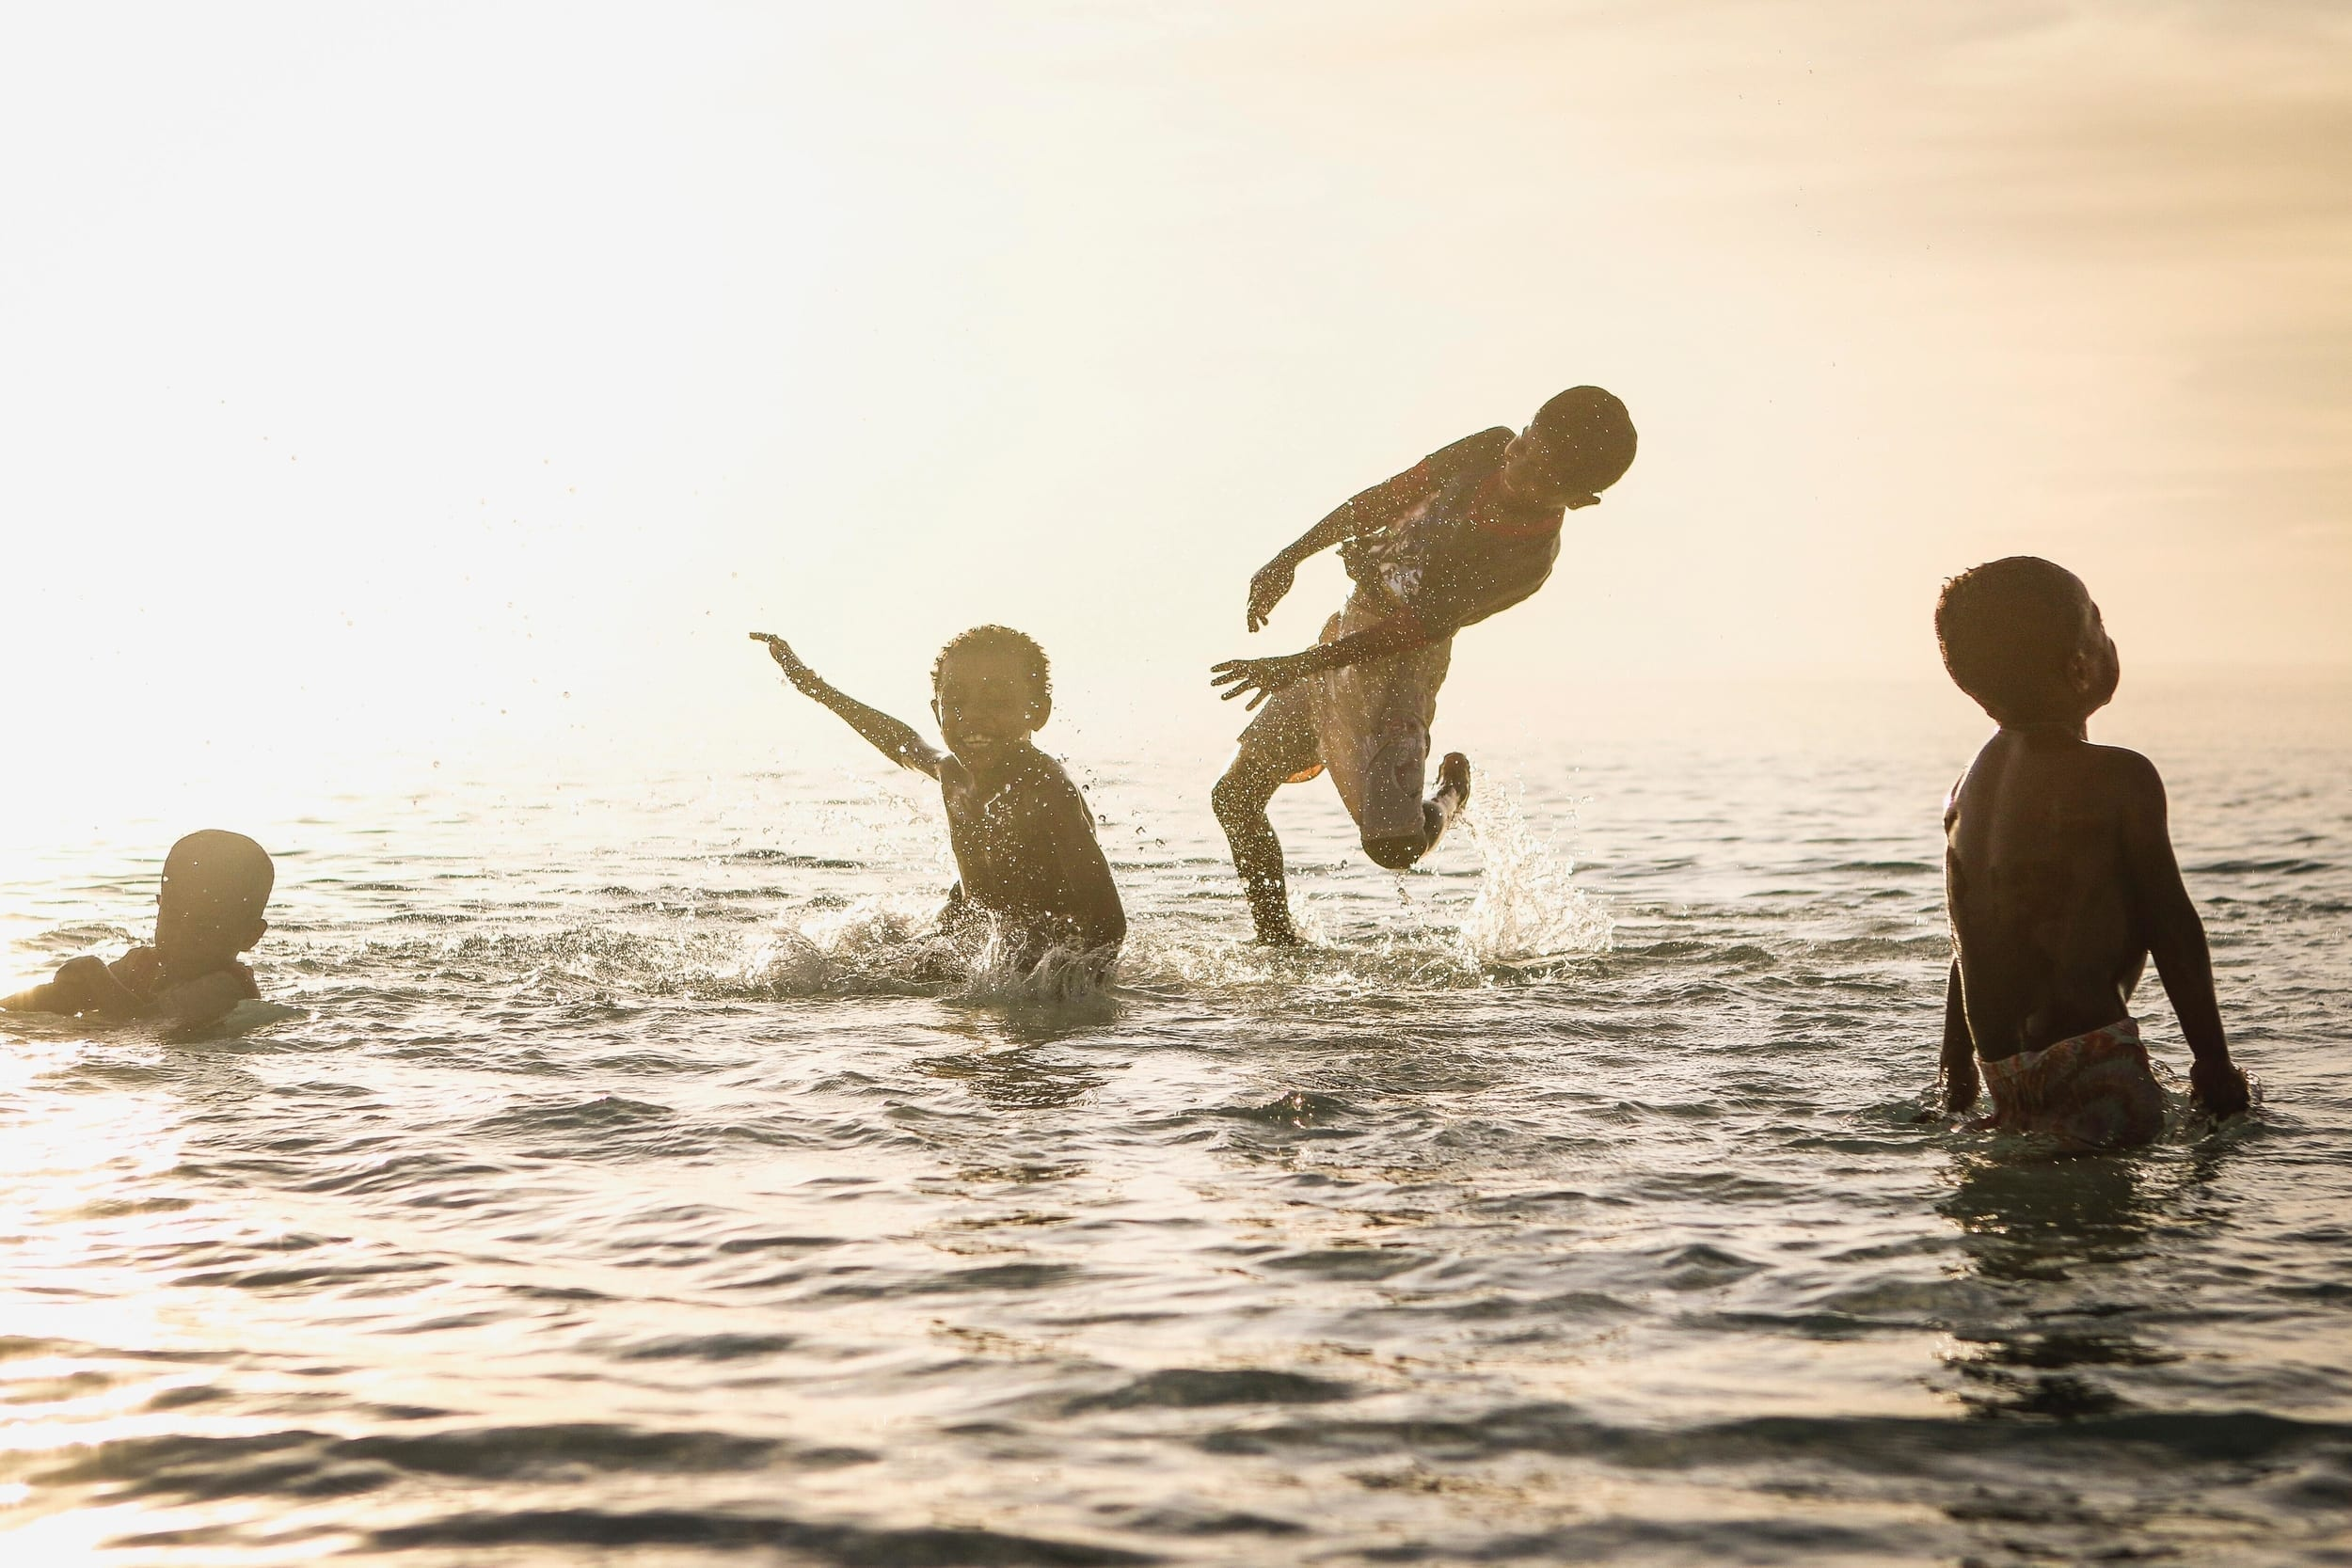 Four boys playing in the water. This photo is from a library of inclusive stock images.